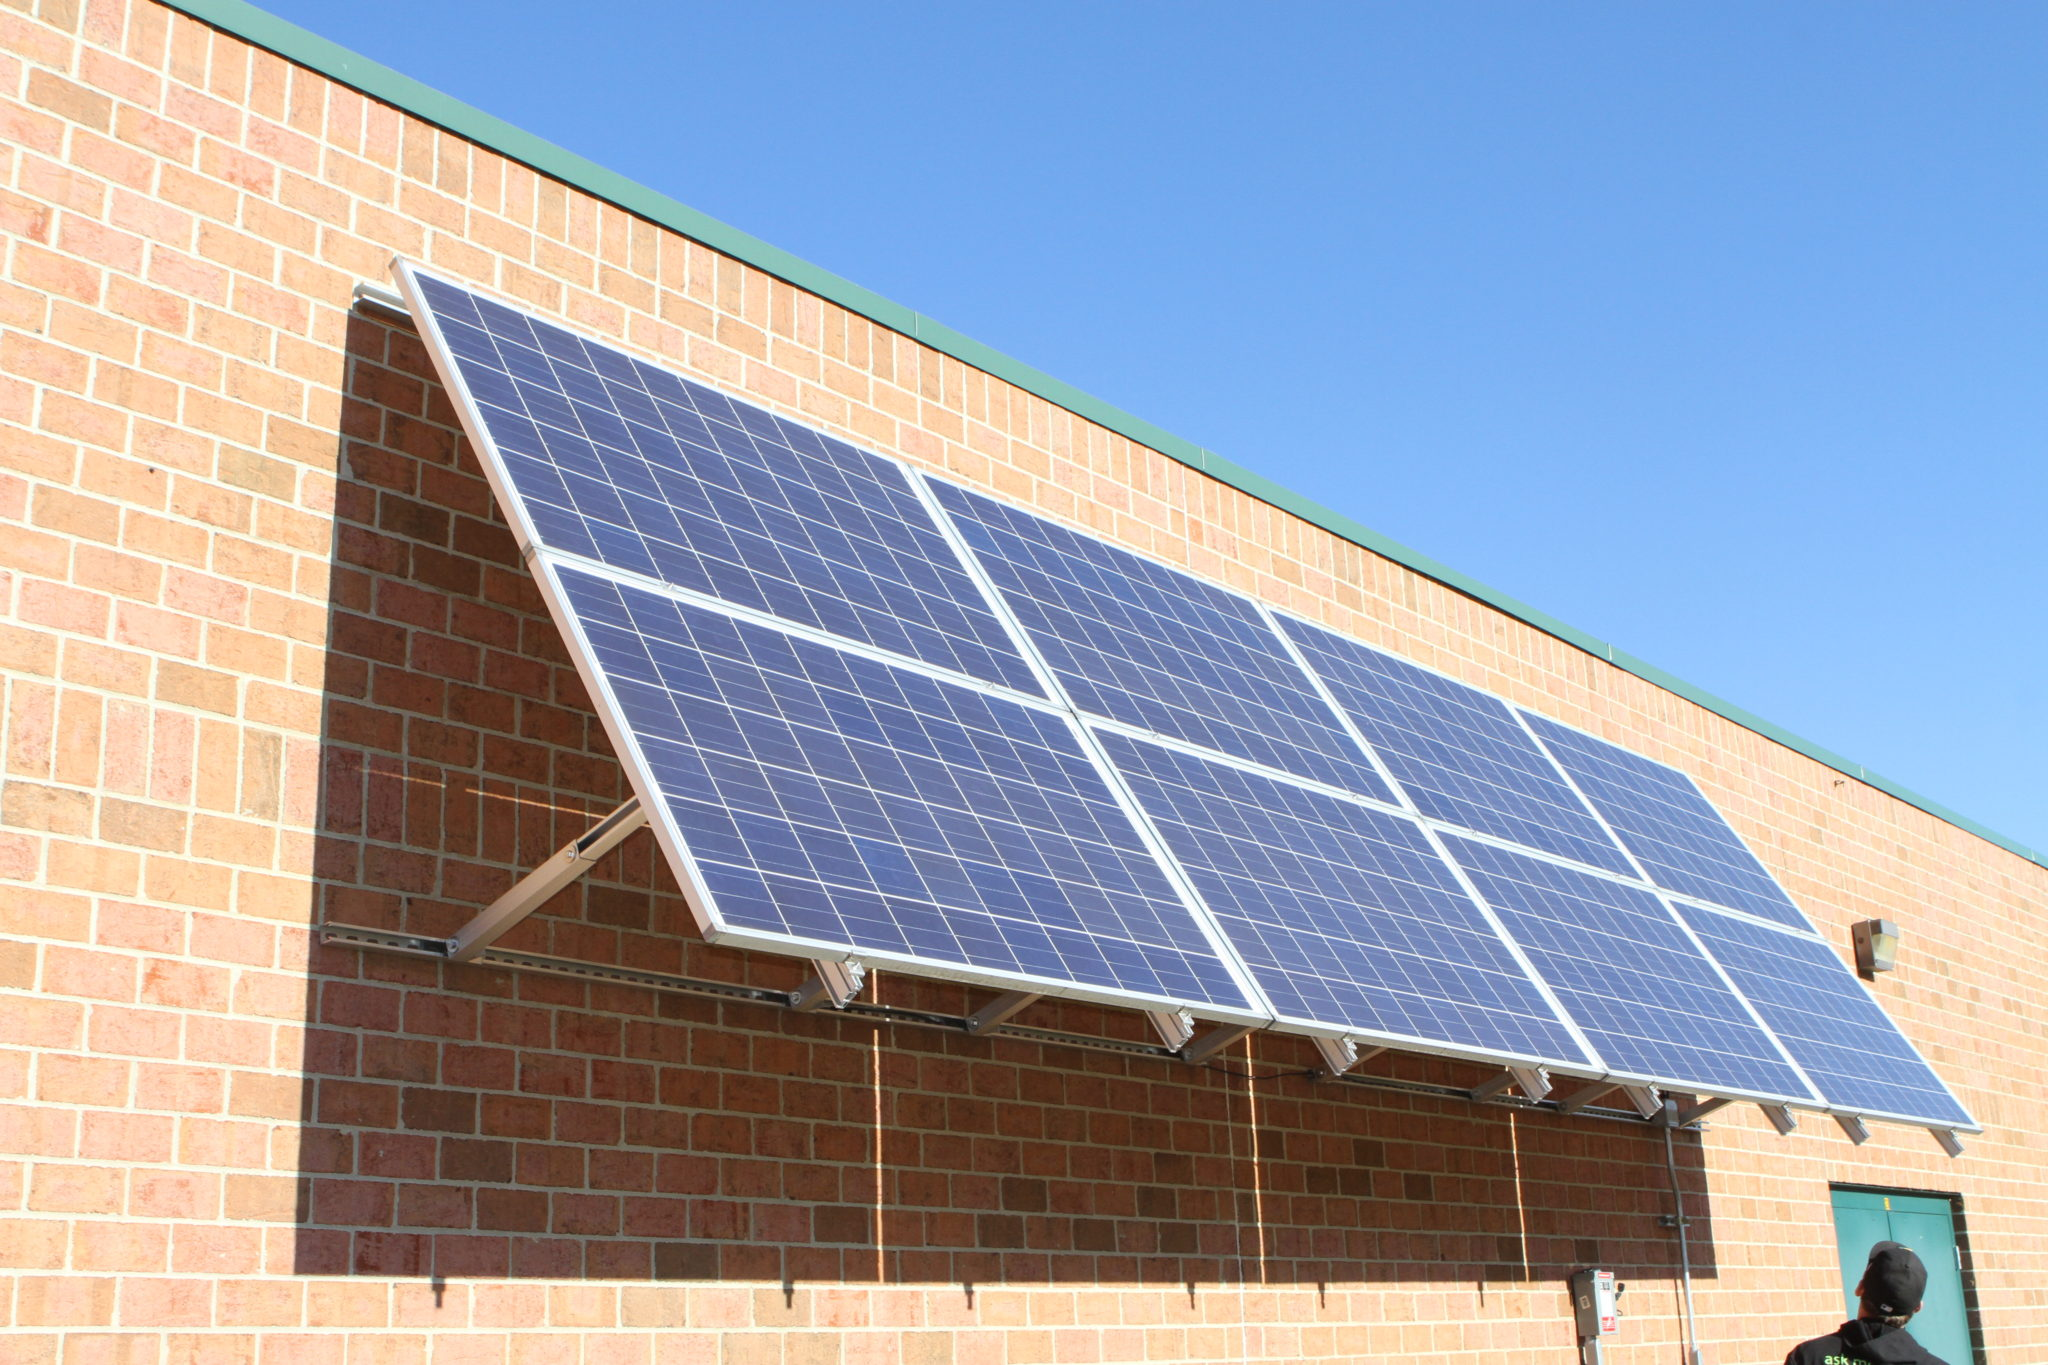 8kW awning system installed on the side of a school in West Virginia Photo Courtesy of Roxie Brown